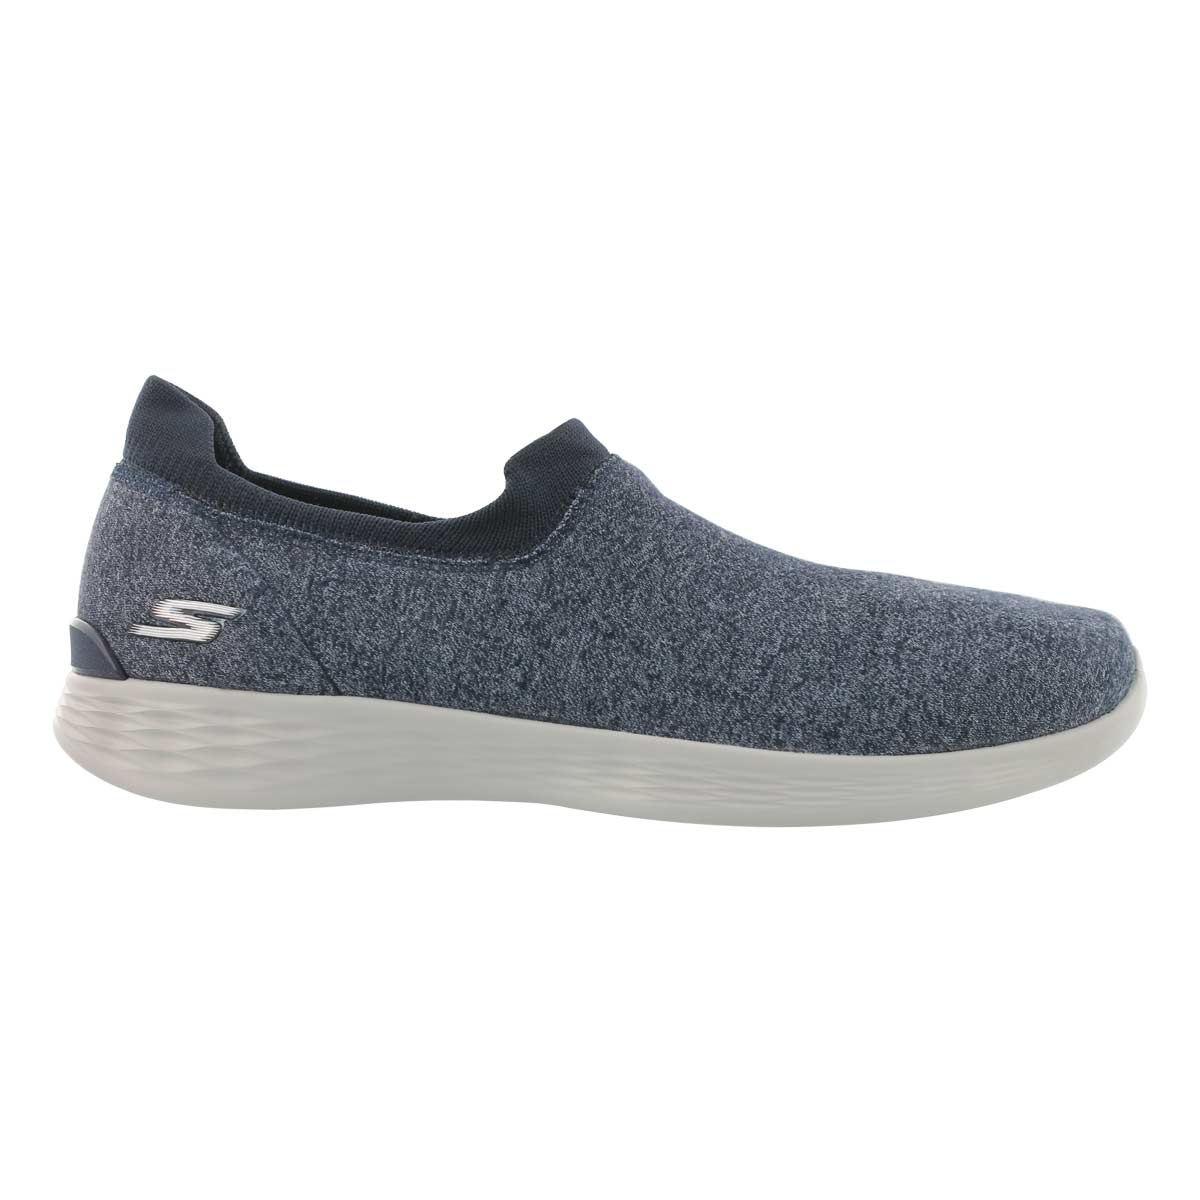 Lds You Define nvy/gry slip on shoe